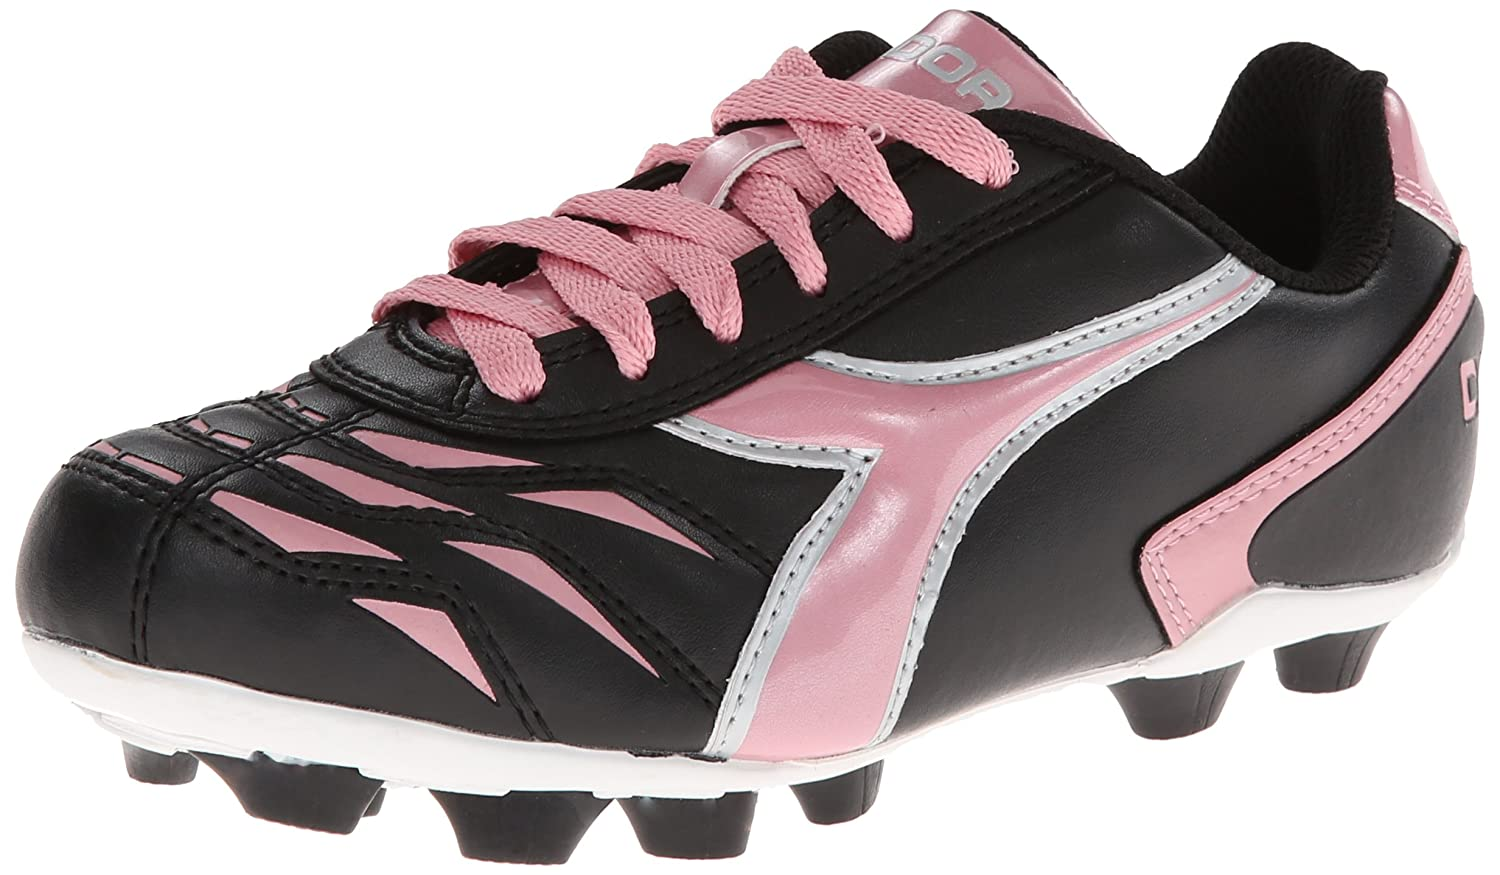 Diadora Capitano MD JR Soccer Shoe (Little Kid/Big Kid) Capitano MD JR - K